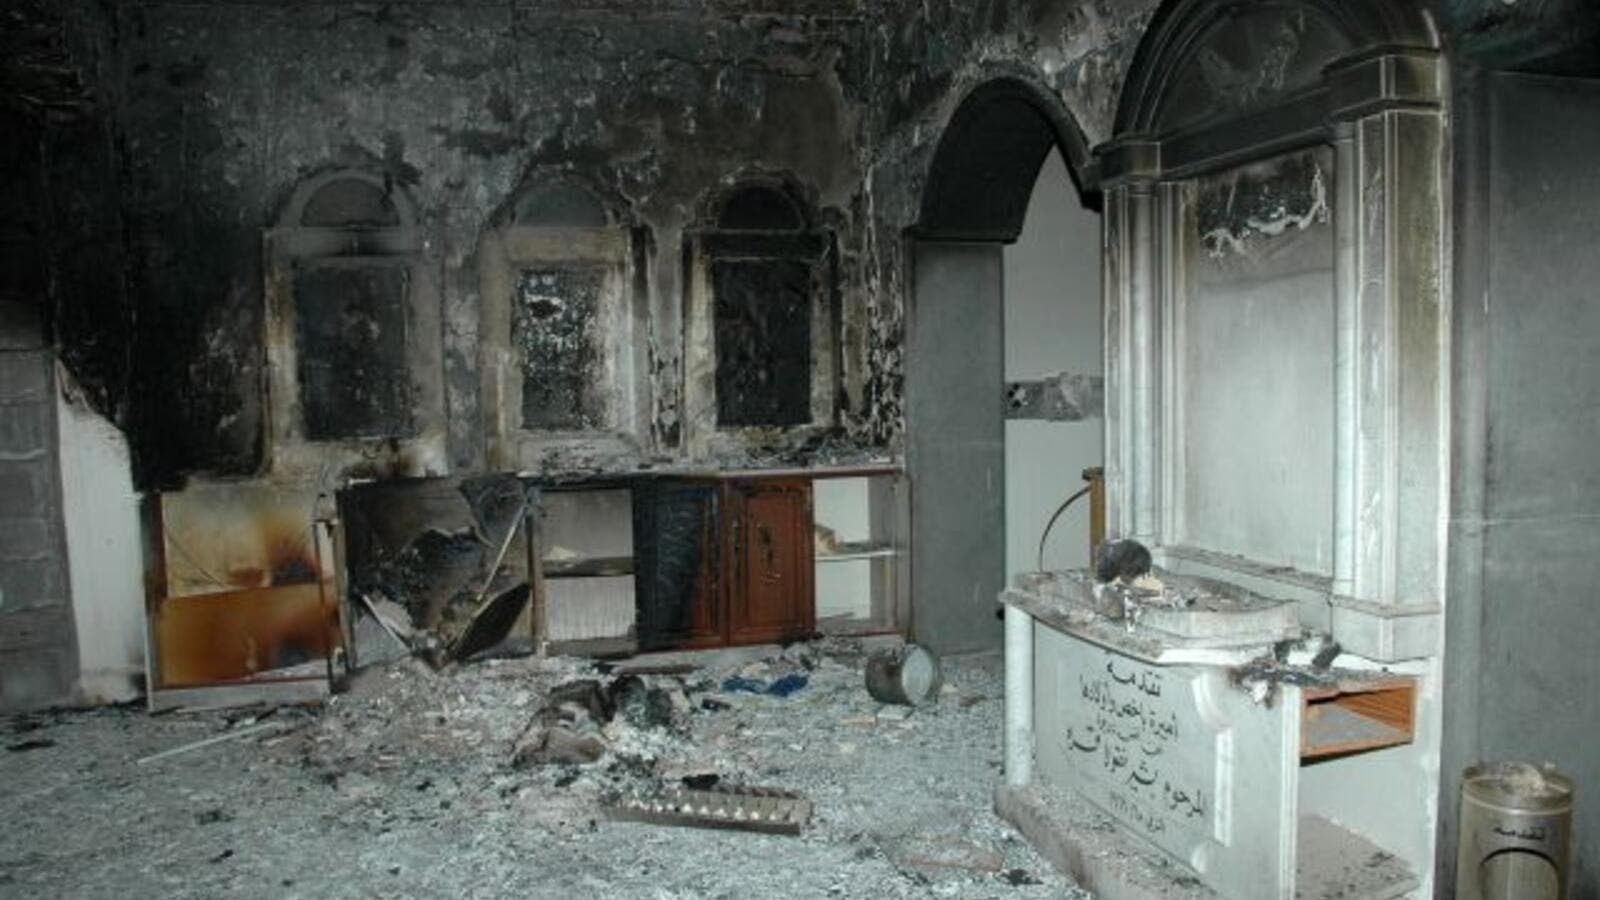 A picture taken on May 9, 2014 shows the damage inside Um al-Zinar church in the Christian Hamidiyah neighborhood of Syria's central city of Homs. (AFP/File)